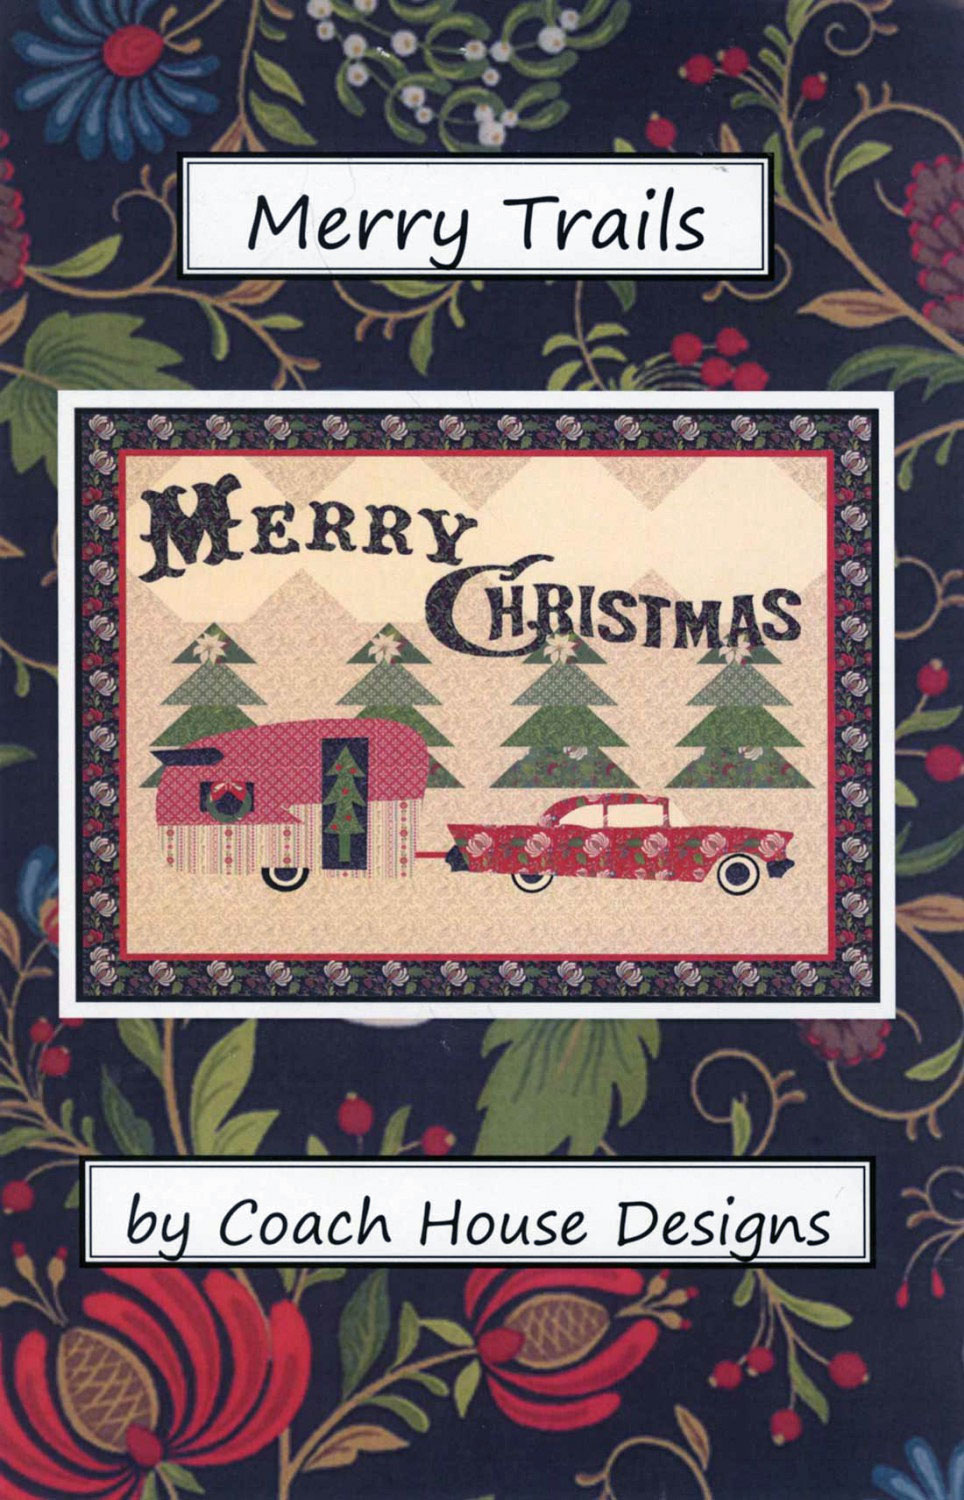 Merry-Trails-quilt-sewing-pattern-Coach-House-Designs-Front